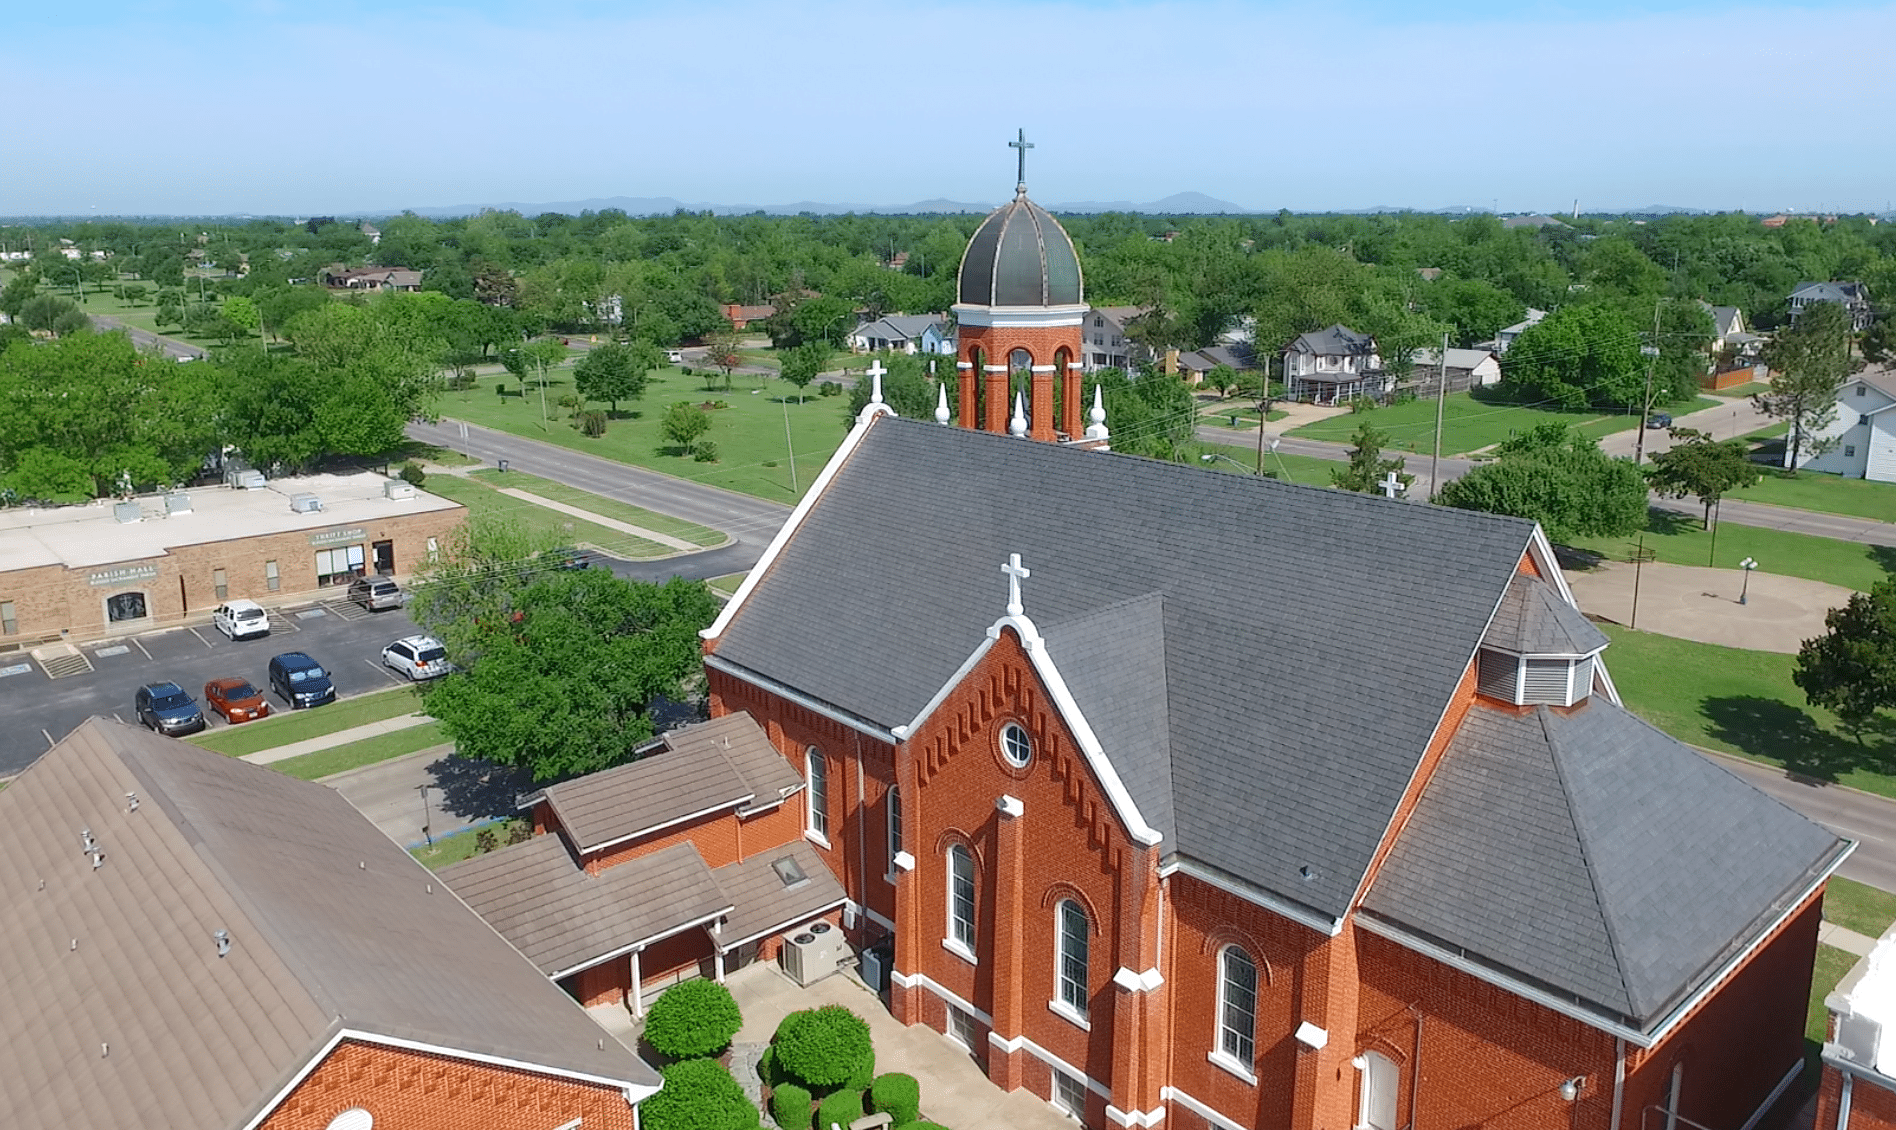 At last, this church's roof is complete, thanks to DaVinci Single-Width Slate